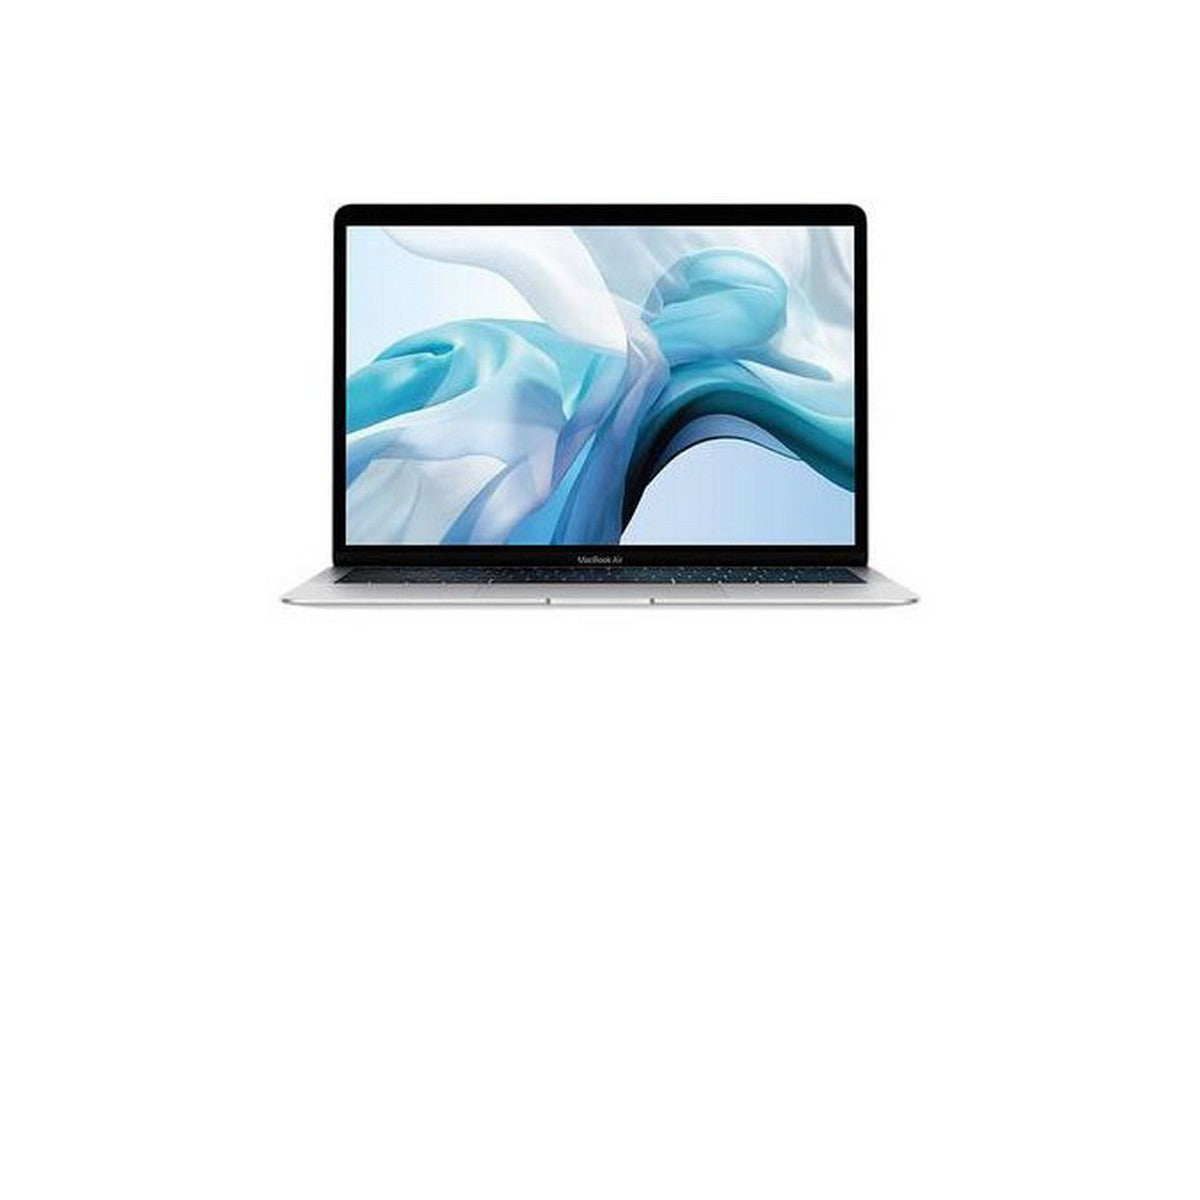 Apple MacBook Air 13 Laptop 13.3'' QHD IPS , Intel Core i5 1.6GHz up to 3.6GHz with 4MB cache, 16GB RAM, Intel UHD617 GPU, 512GB SSD, Touch ID, Model:MUQU2LL/A, MacOS, English Keyboard, Silver